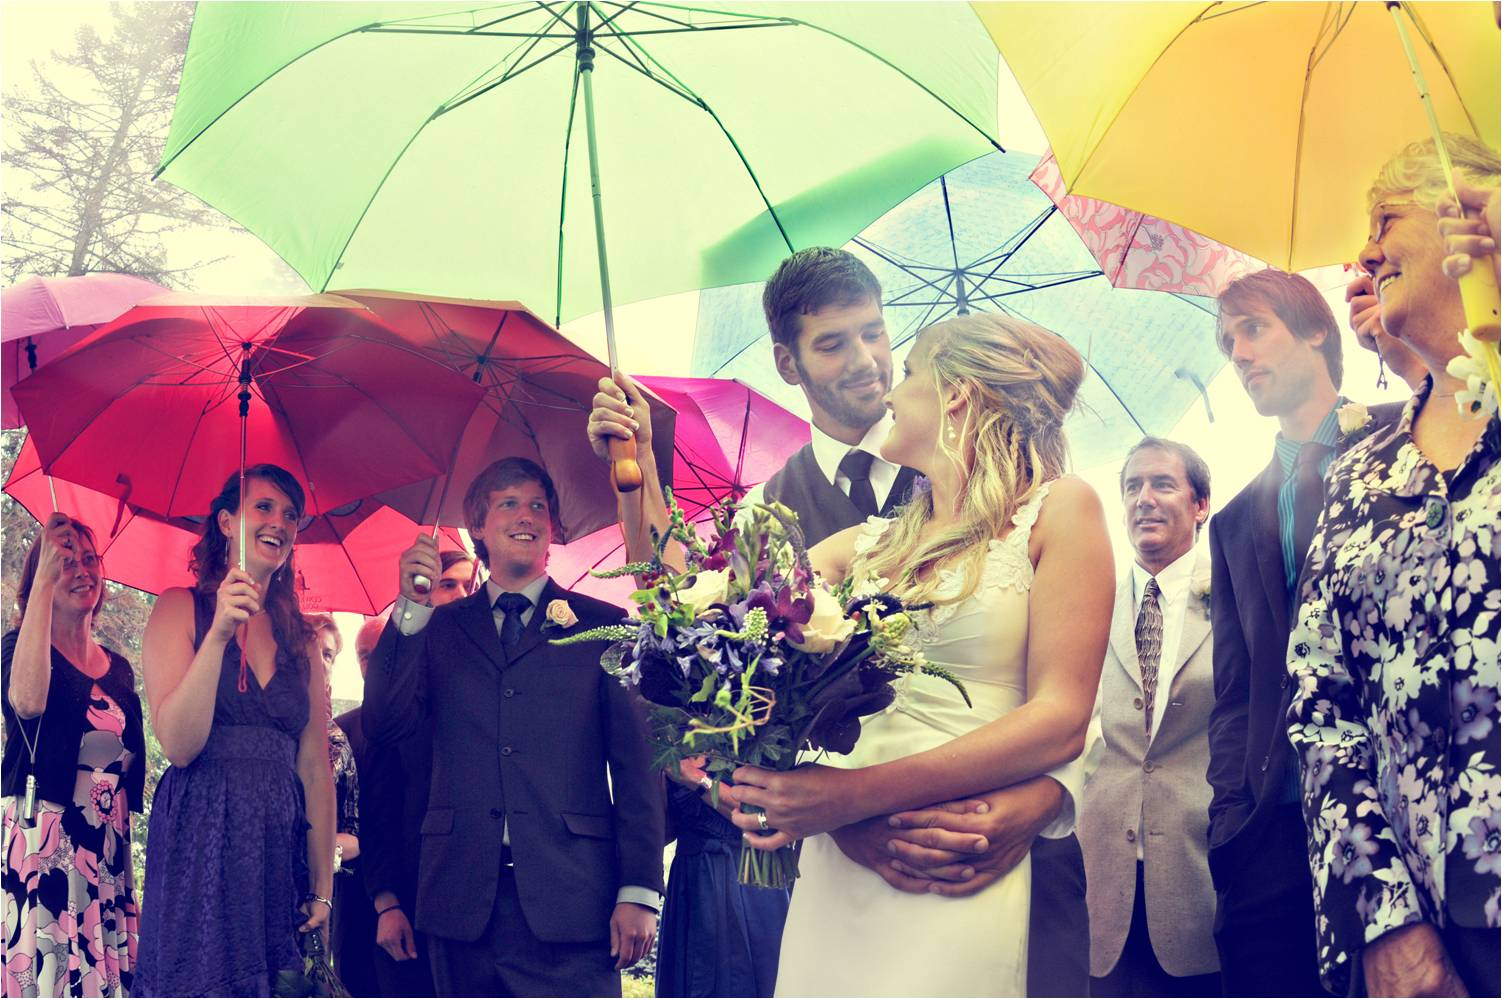 Bride-and-groom-pose-under-vibrant-umbrellas-with-wedding-guests.original